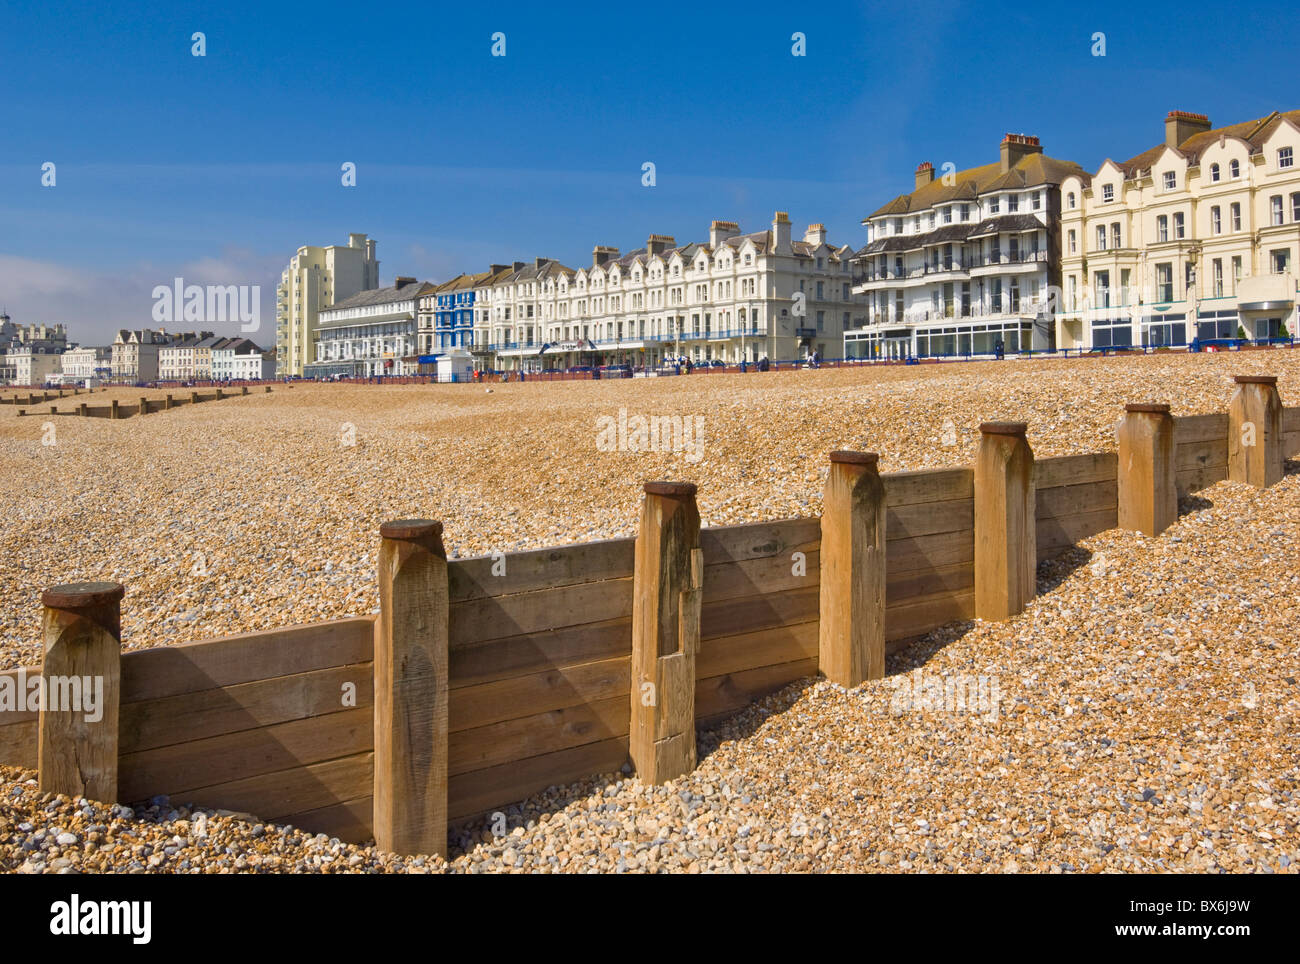 Pebble beach and groynes, hotels on the seafront promenade, Eastbourne, East Sussex, England, United Kingdom, Europe - Stock Image